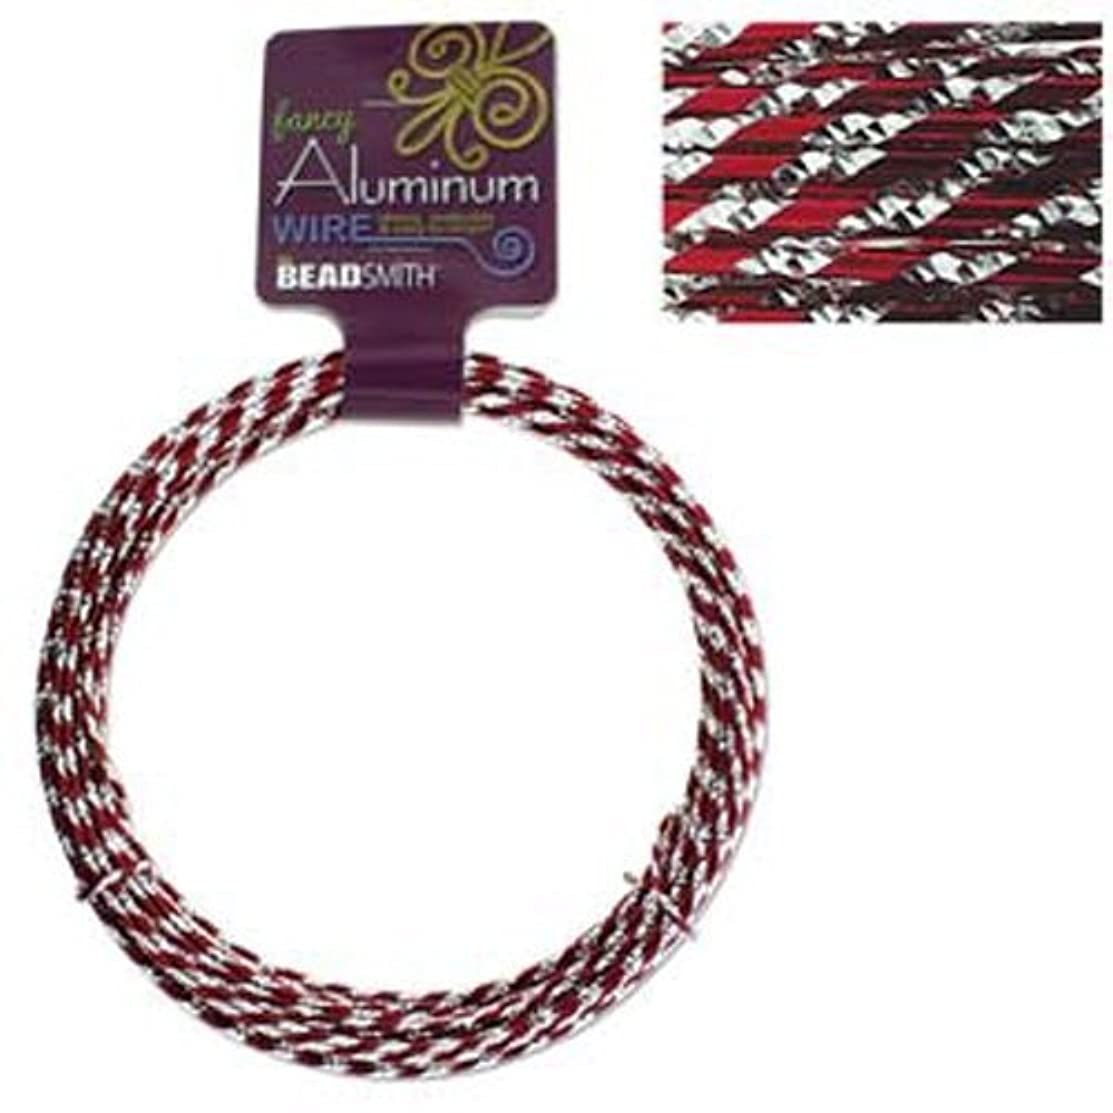 Fancy Aluminum Craft Wire 12 Gauge 39 Feet Diamond Cut Red & Silver